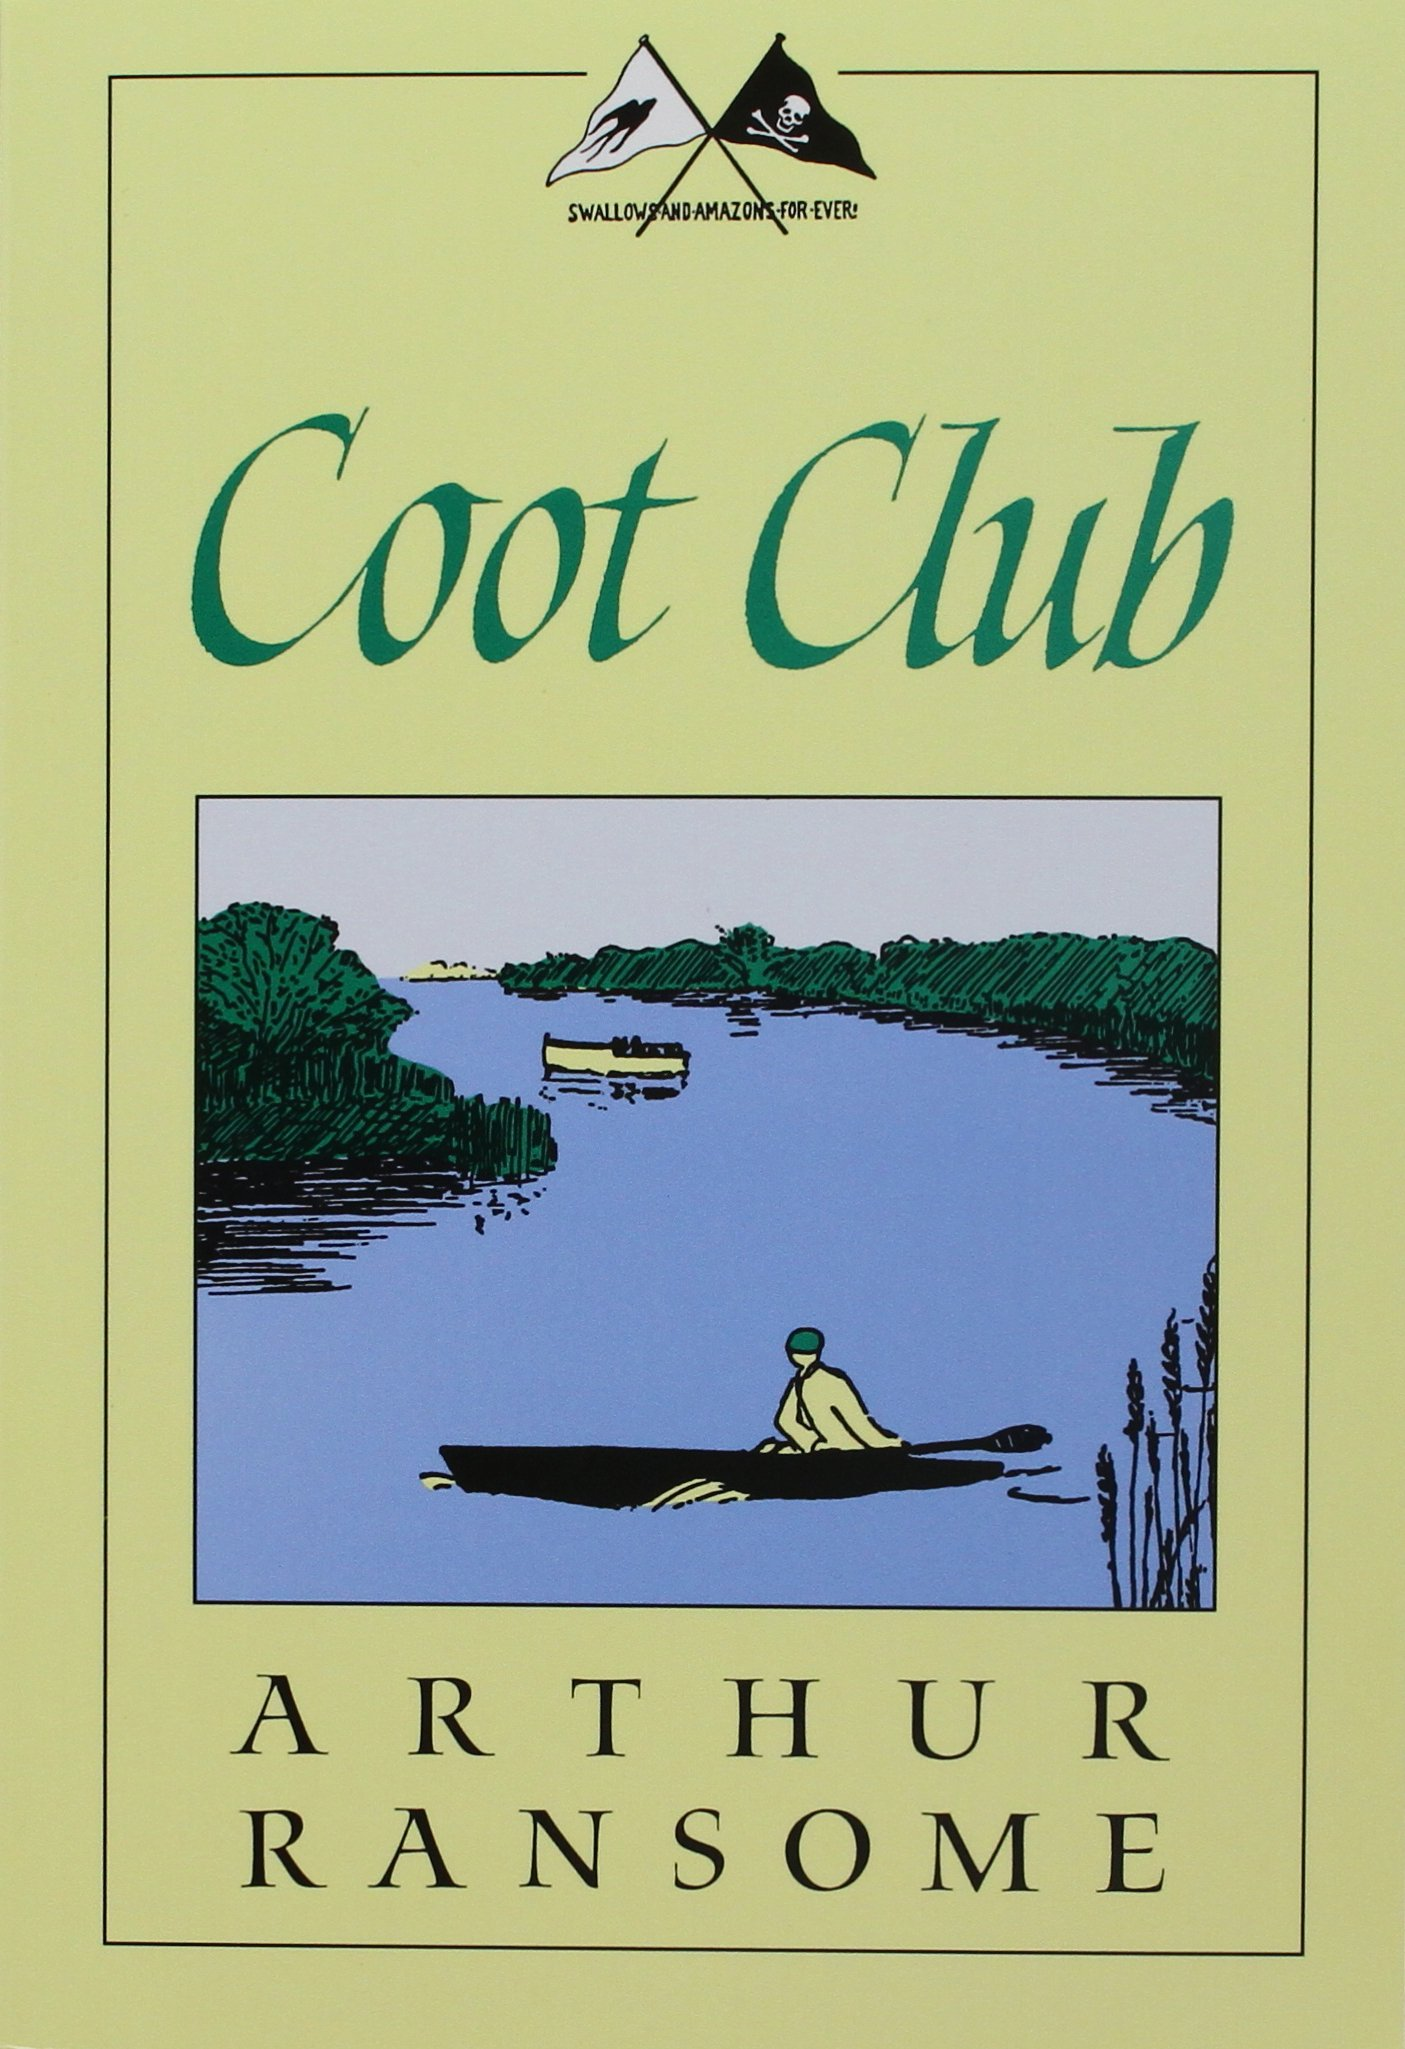 Coot Swallows Amazons Arthur Ransome